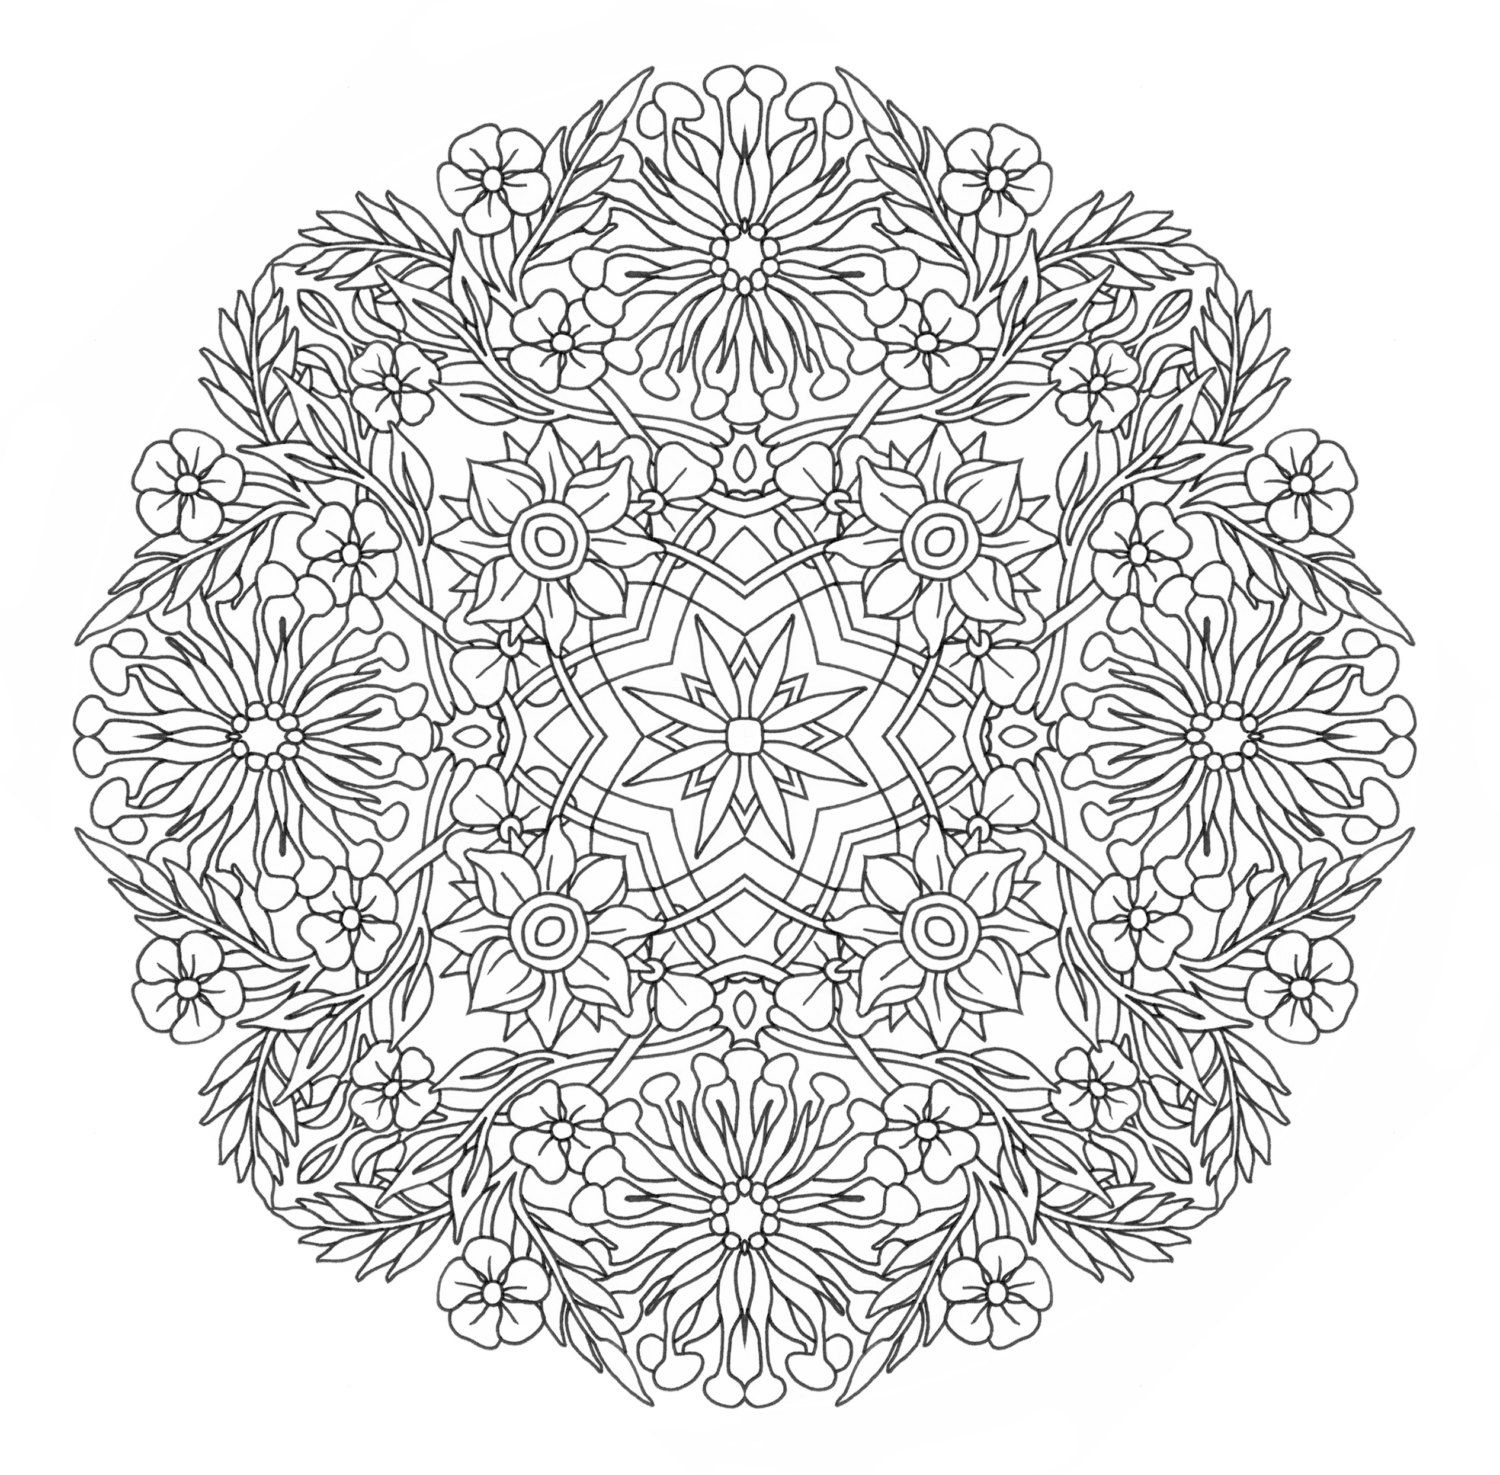 Coloring Pages Mandala Coloring Pages Printable 1000 images about mandalas on pinterest coloring free printable pages and books